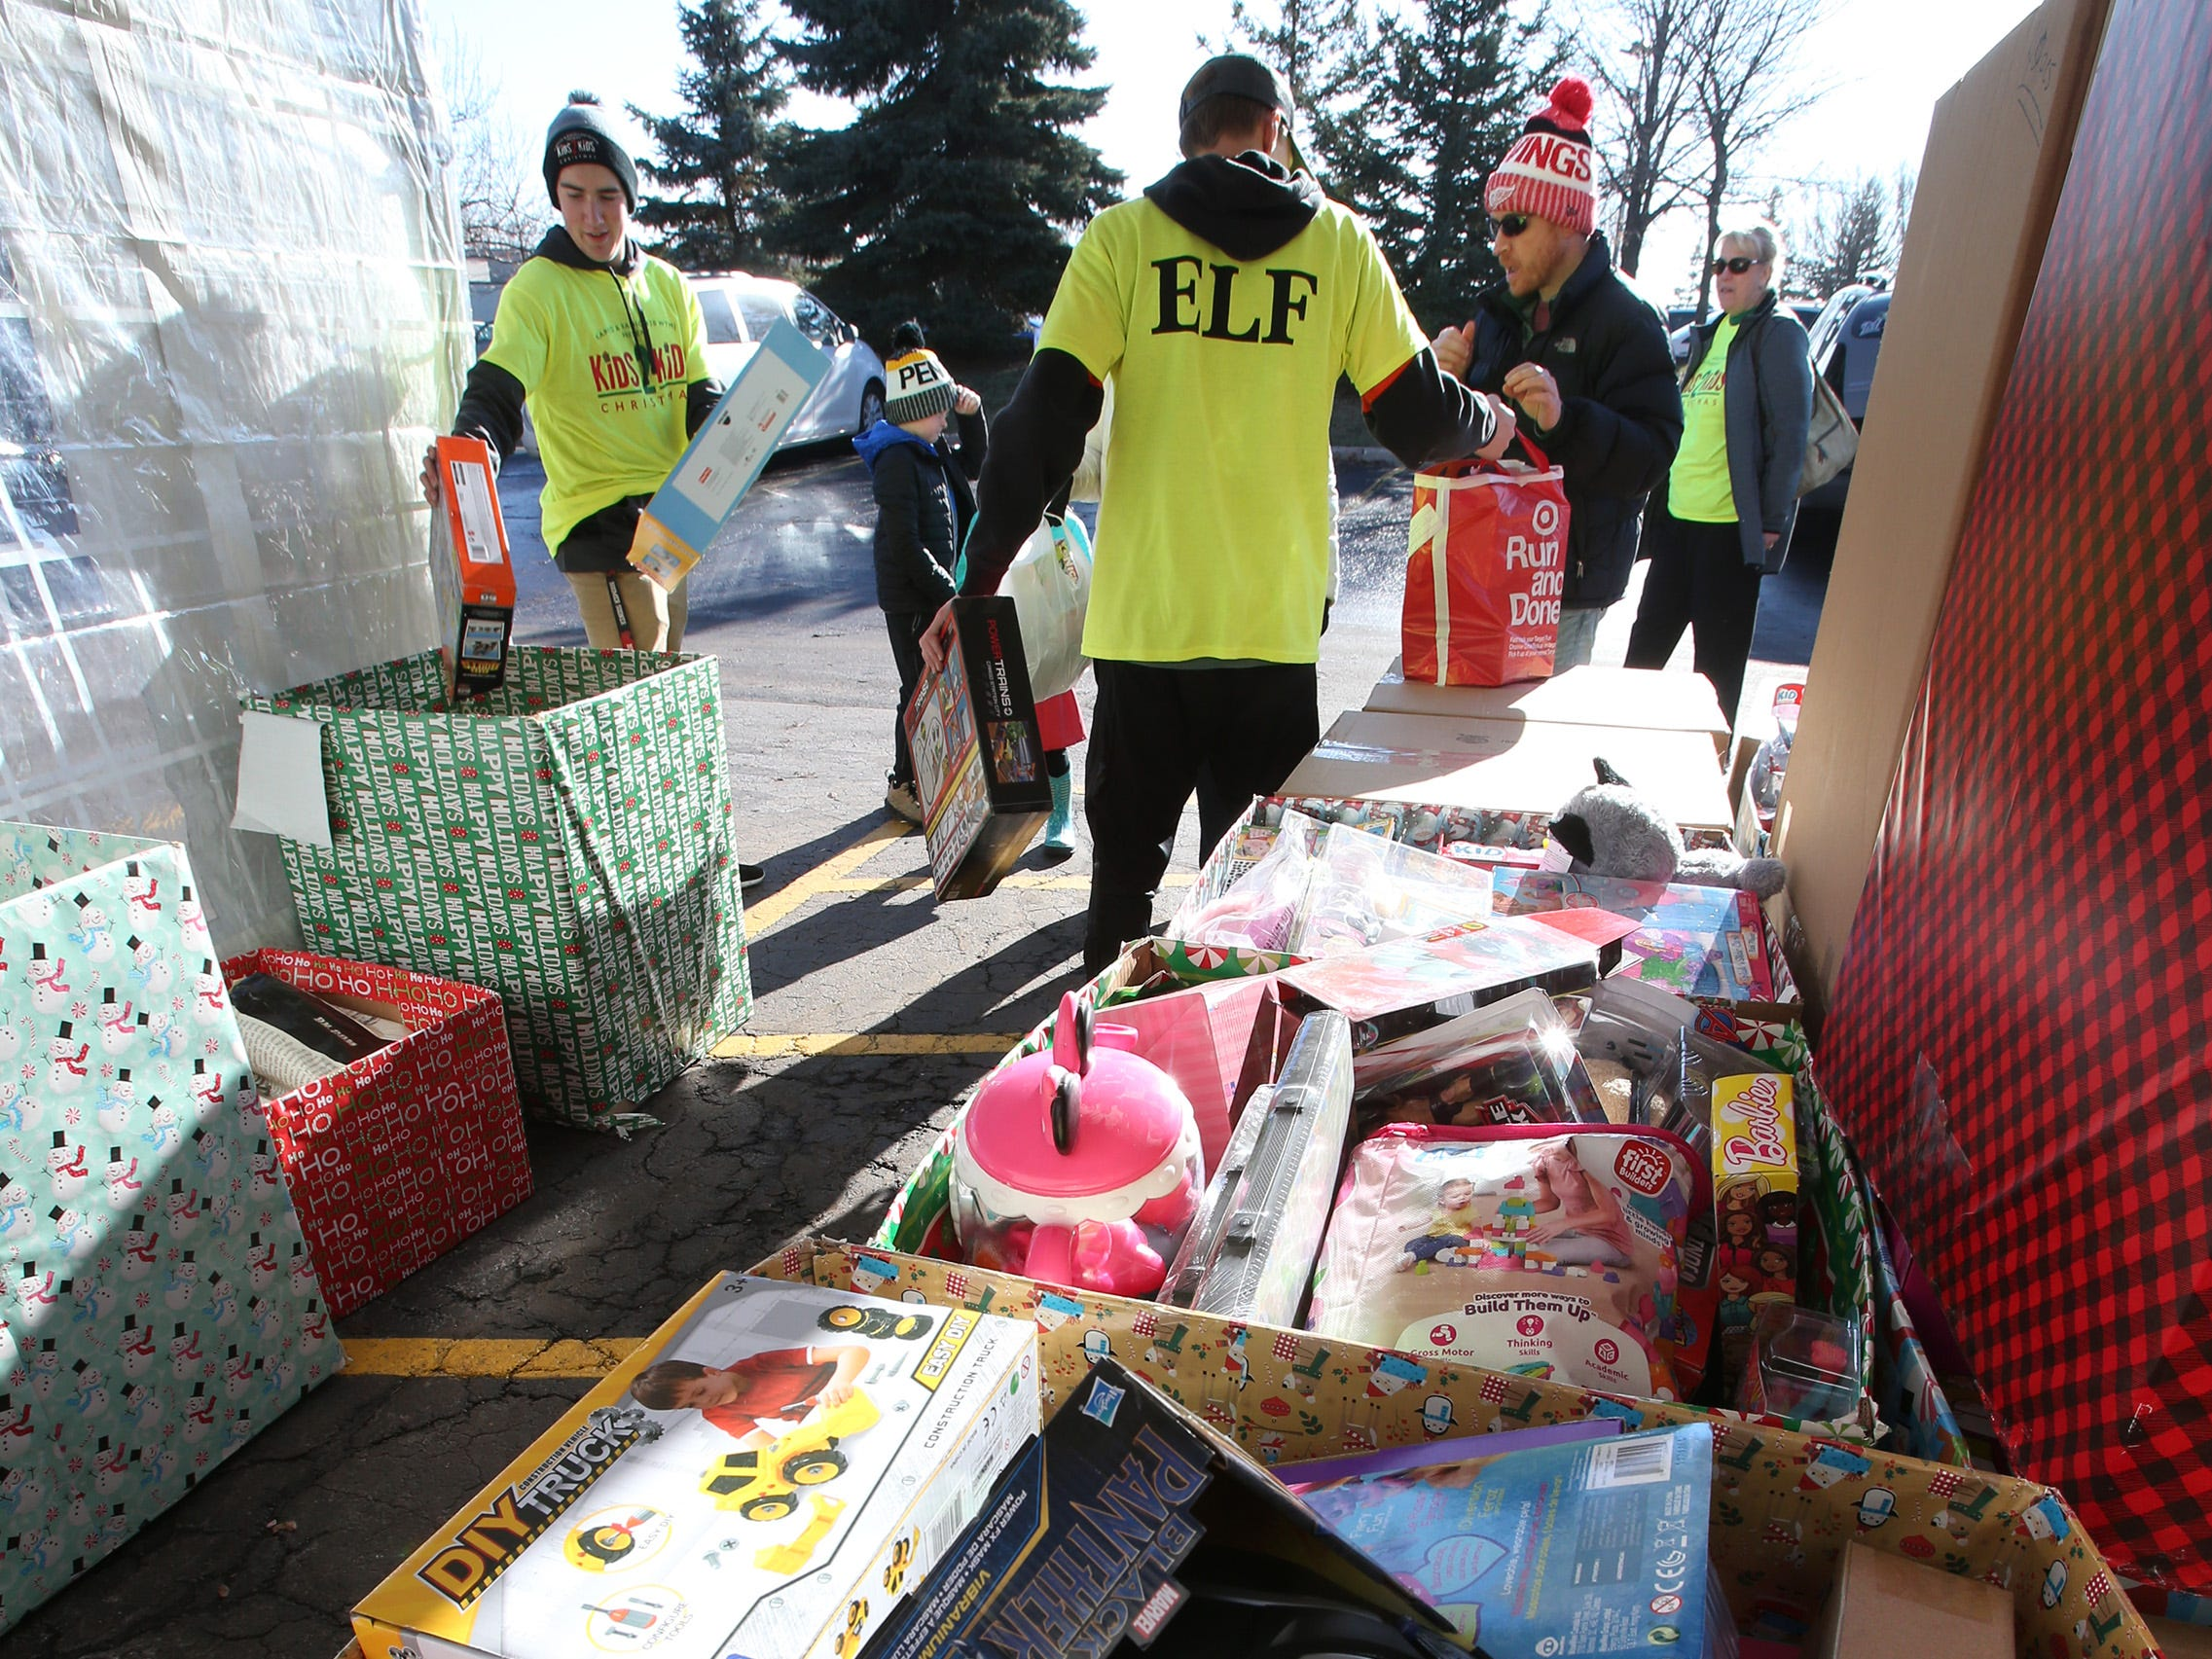 Ethan Ehlers and Tommy Lamb collect items in the drop-off area at the Kids2Kids Christmas celebration at Kapco Metal Stamping in Grafton on Dec. 15 that concluded a month-long toy drive that collected more than 22,000 toys to be distributed to children in Ozaukee and Milwaukee counties.